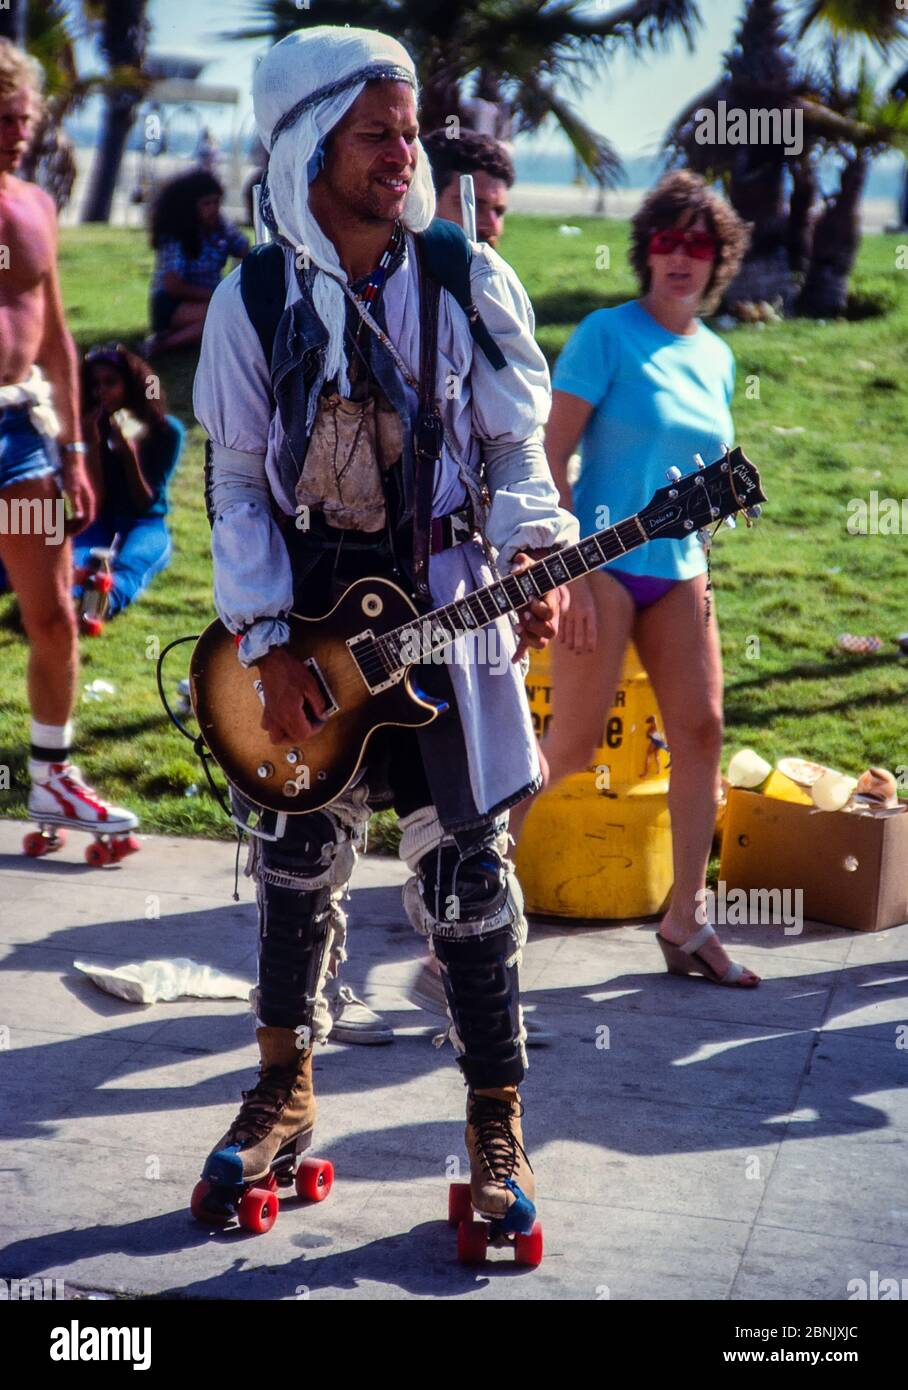 Venice, California, USA - May, 1981: Electric guitarist on rollerskates, playing on the beach boardwalk in Venice, California.  Scanned 35mm film. Stock Photo